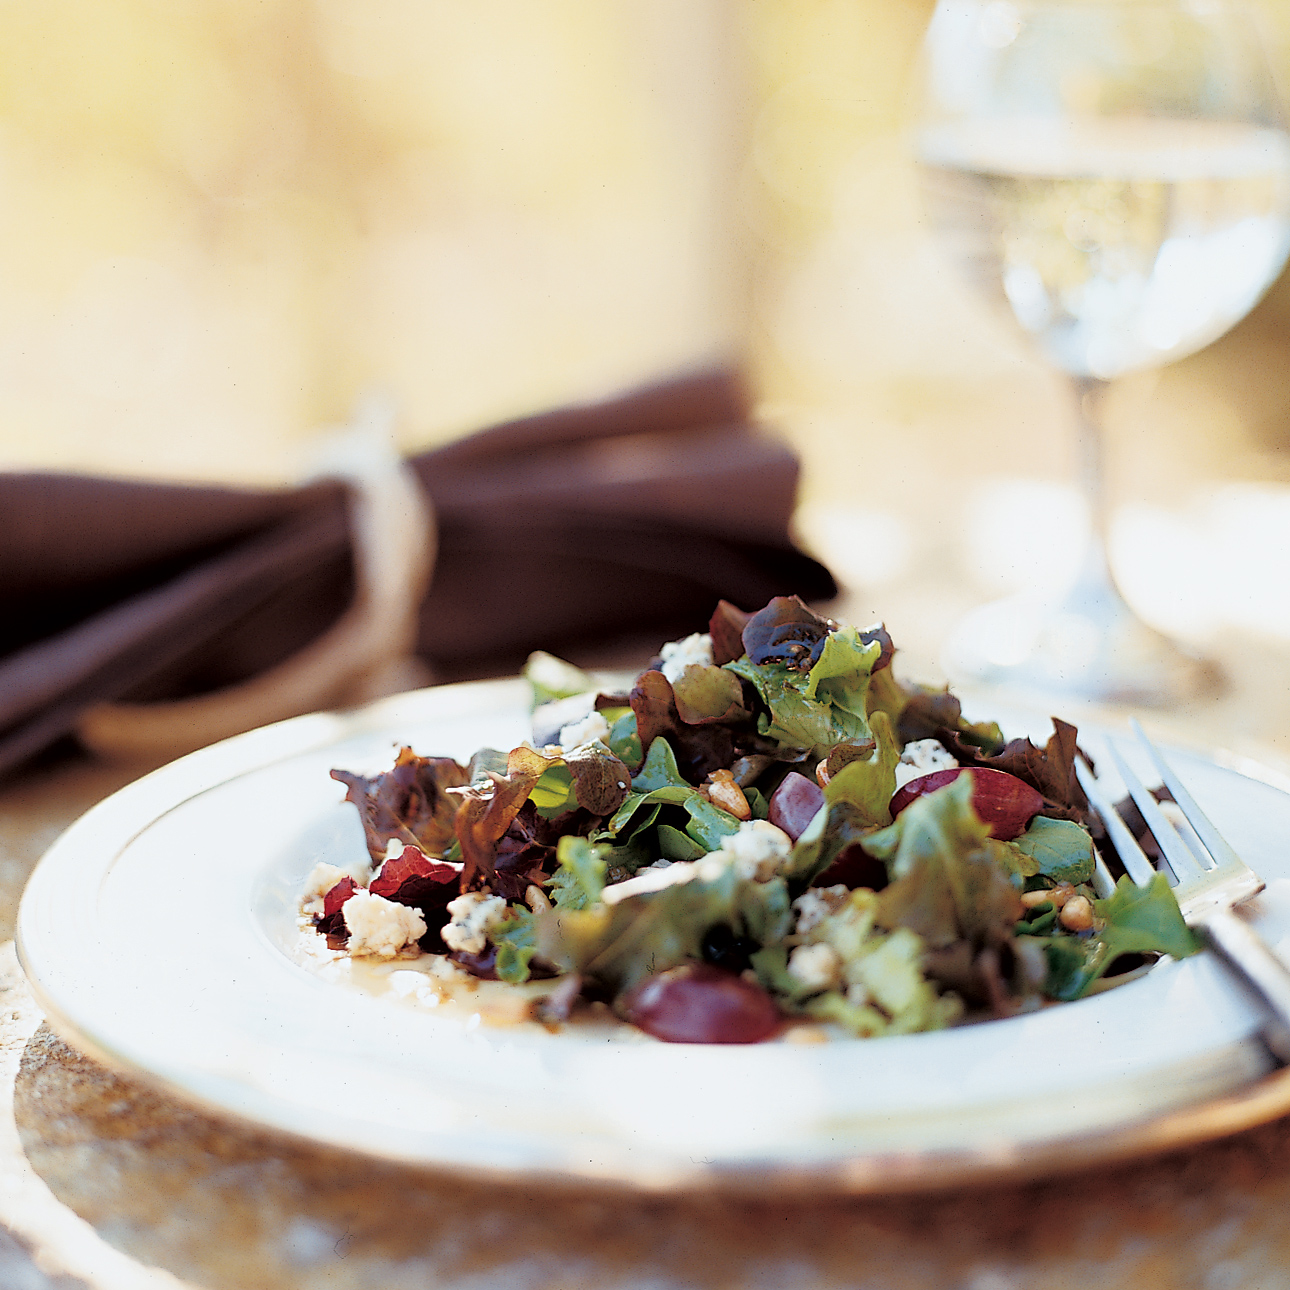 Oak Leaf Lettuce Salad with Cabrales and Red Grapes